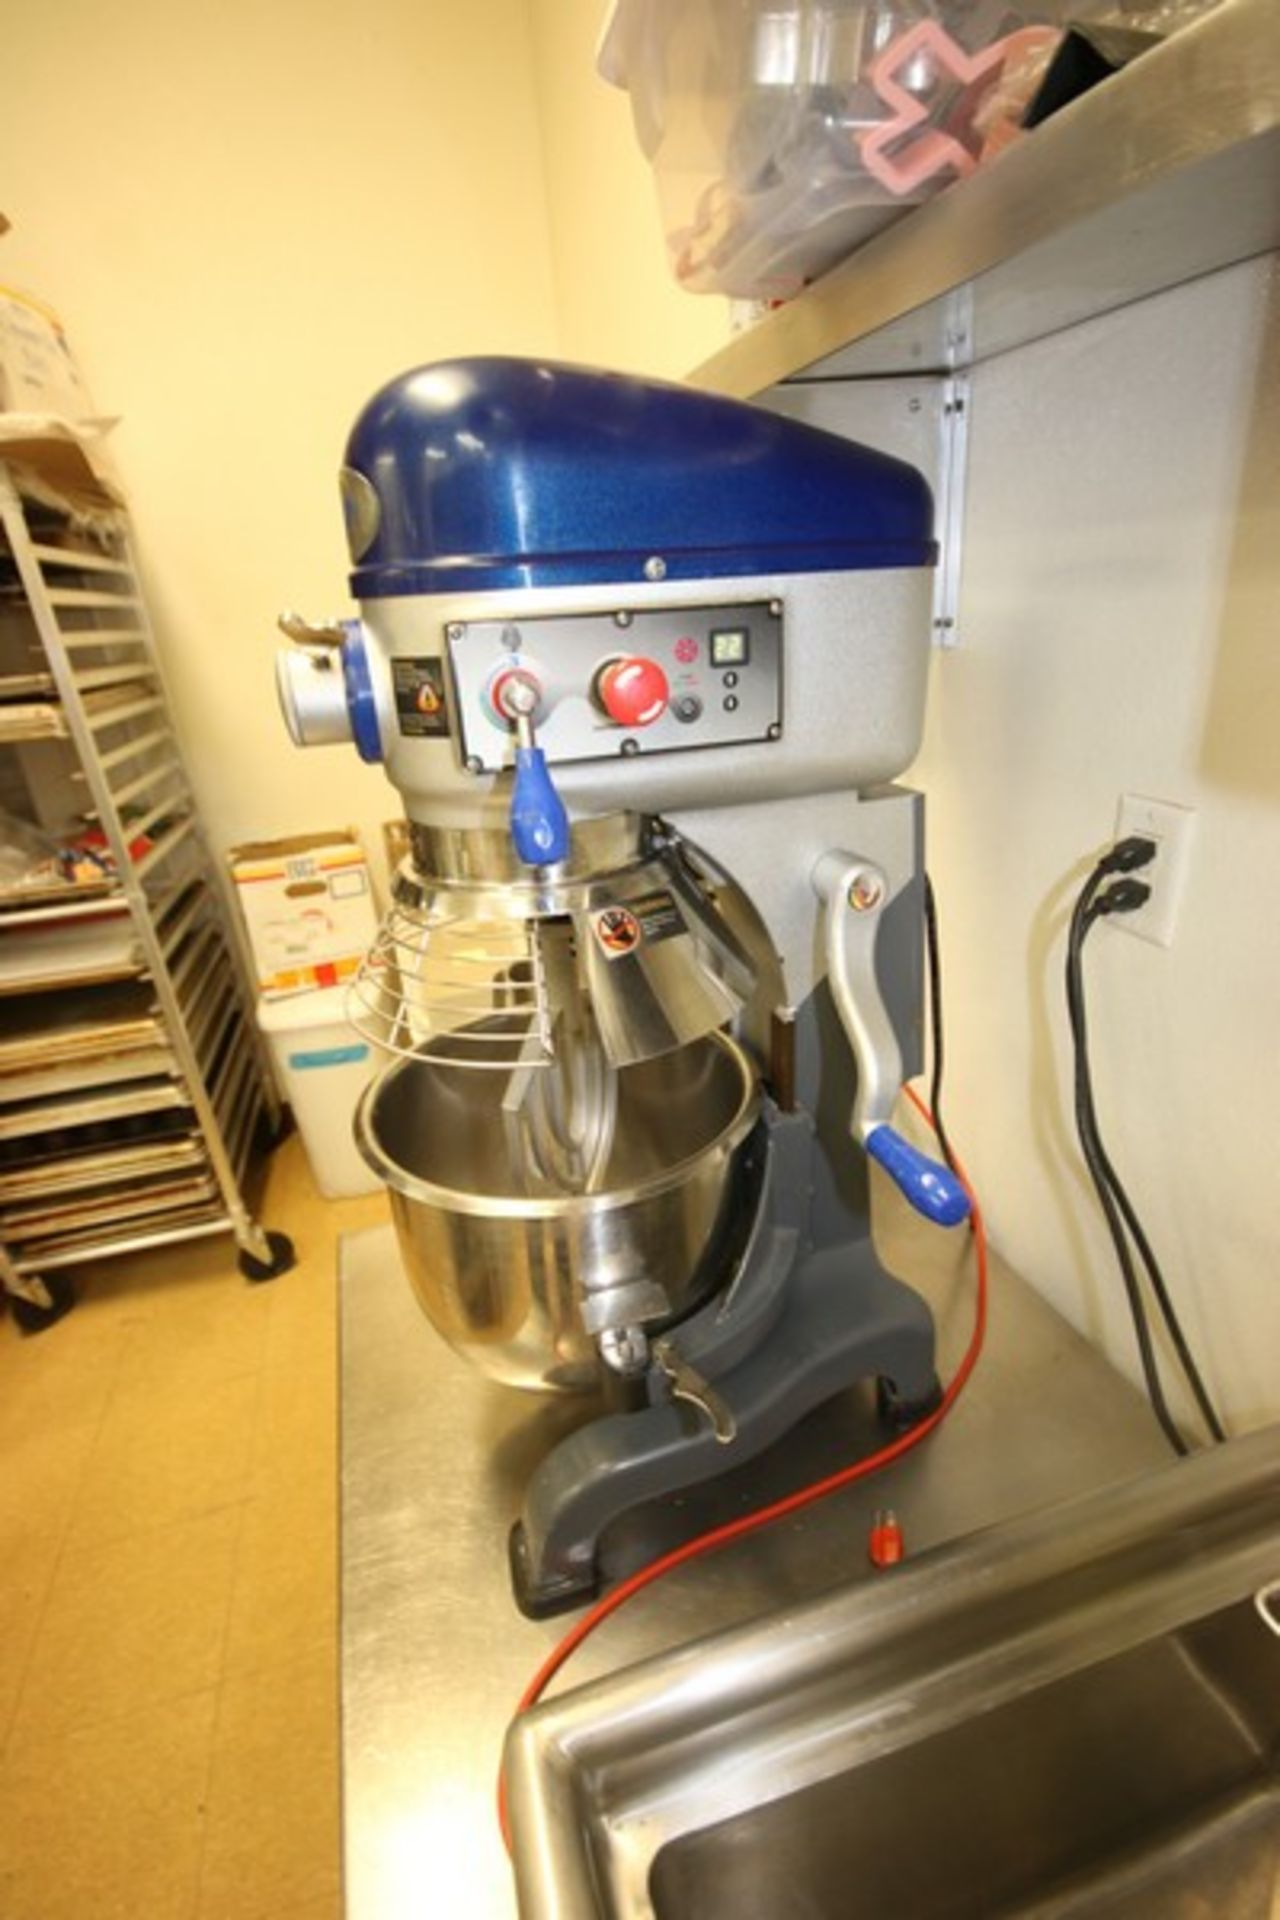 Vollrath Mixer, M/N MIX1020, S/N B42-00181983-0210, with 1/2 hp Motor, 110 Volts, 1 Phase, with S/ - Image 7 of 9